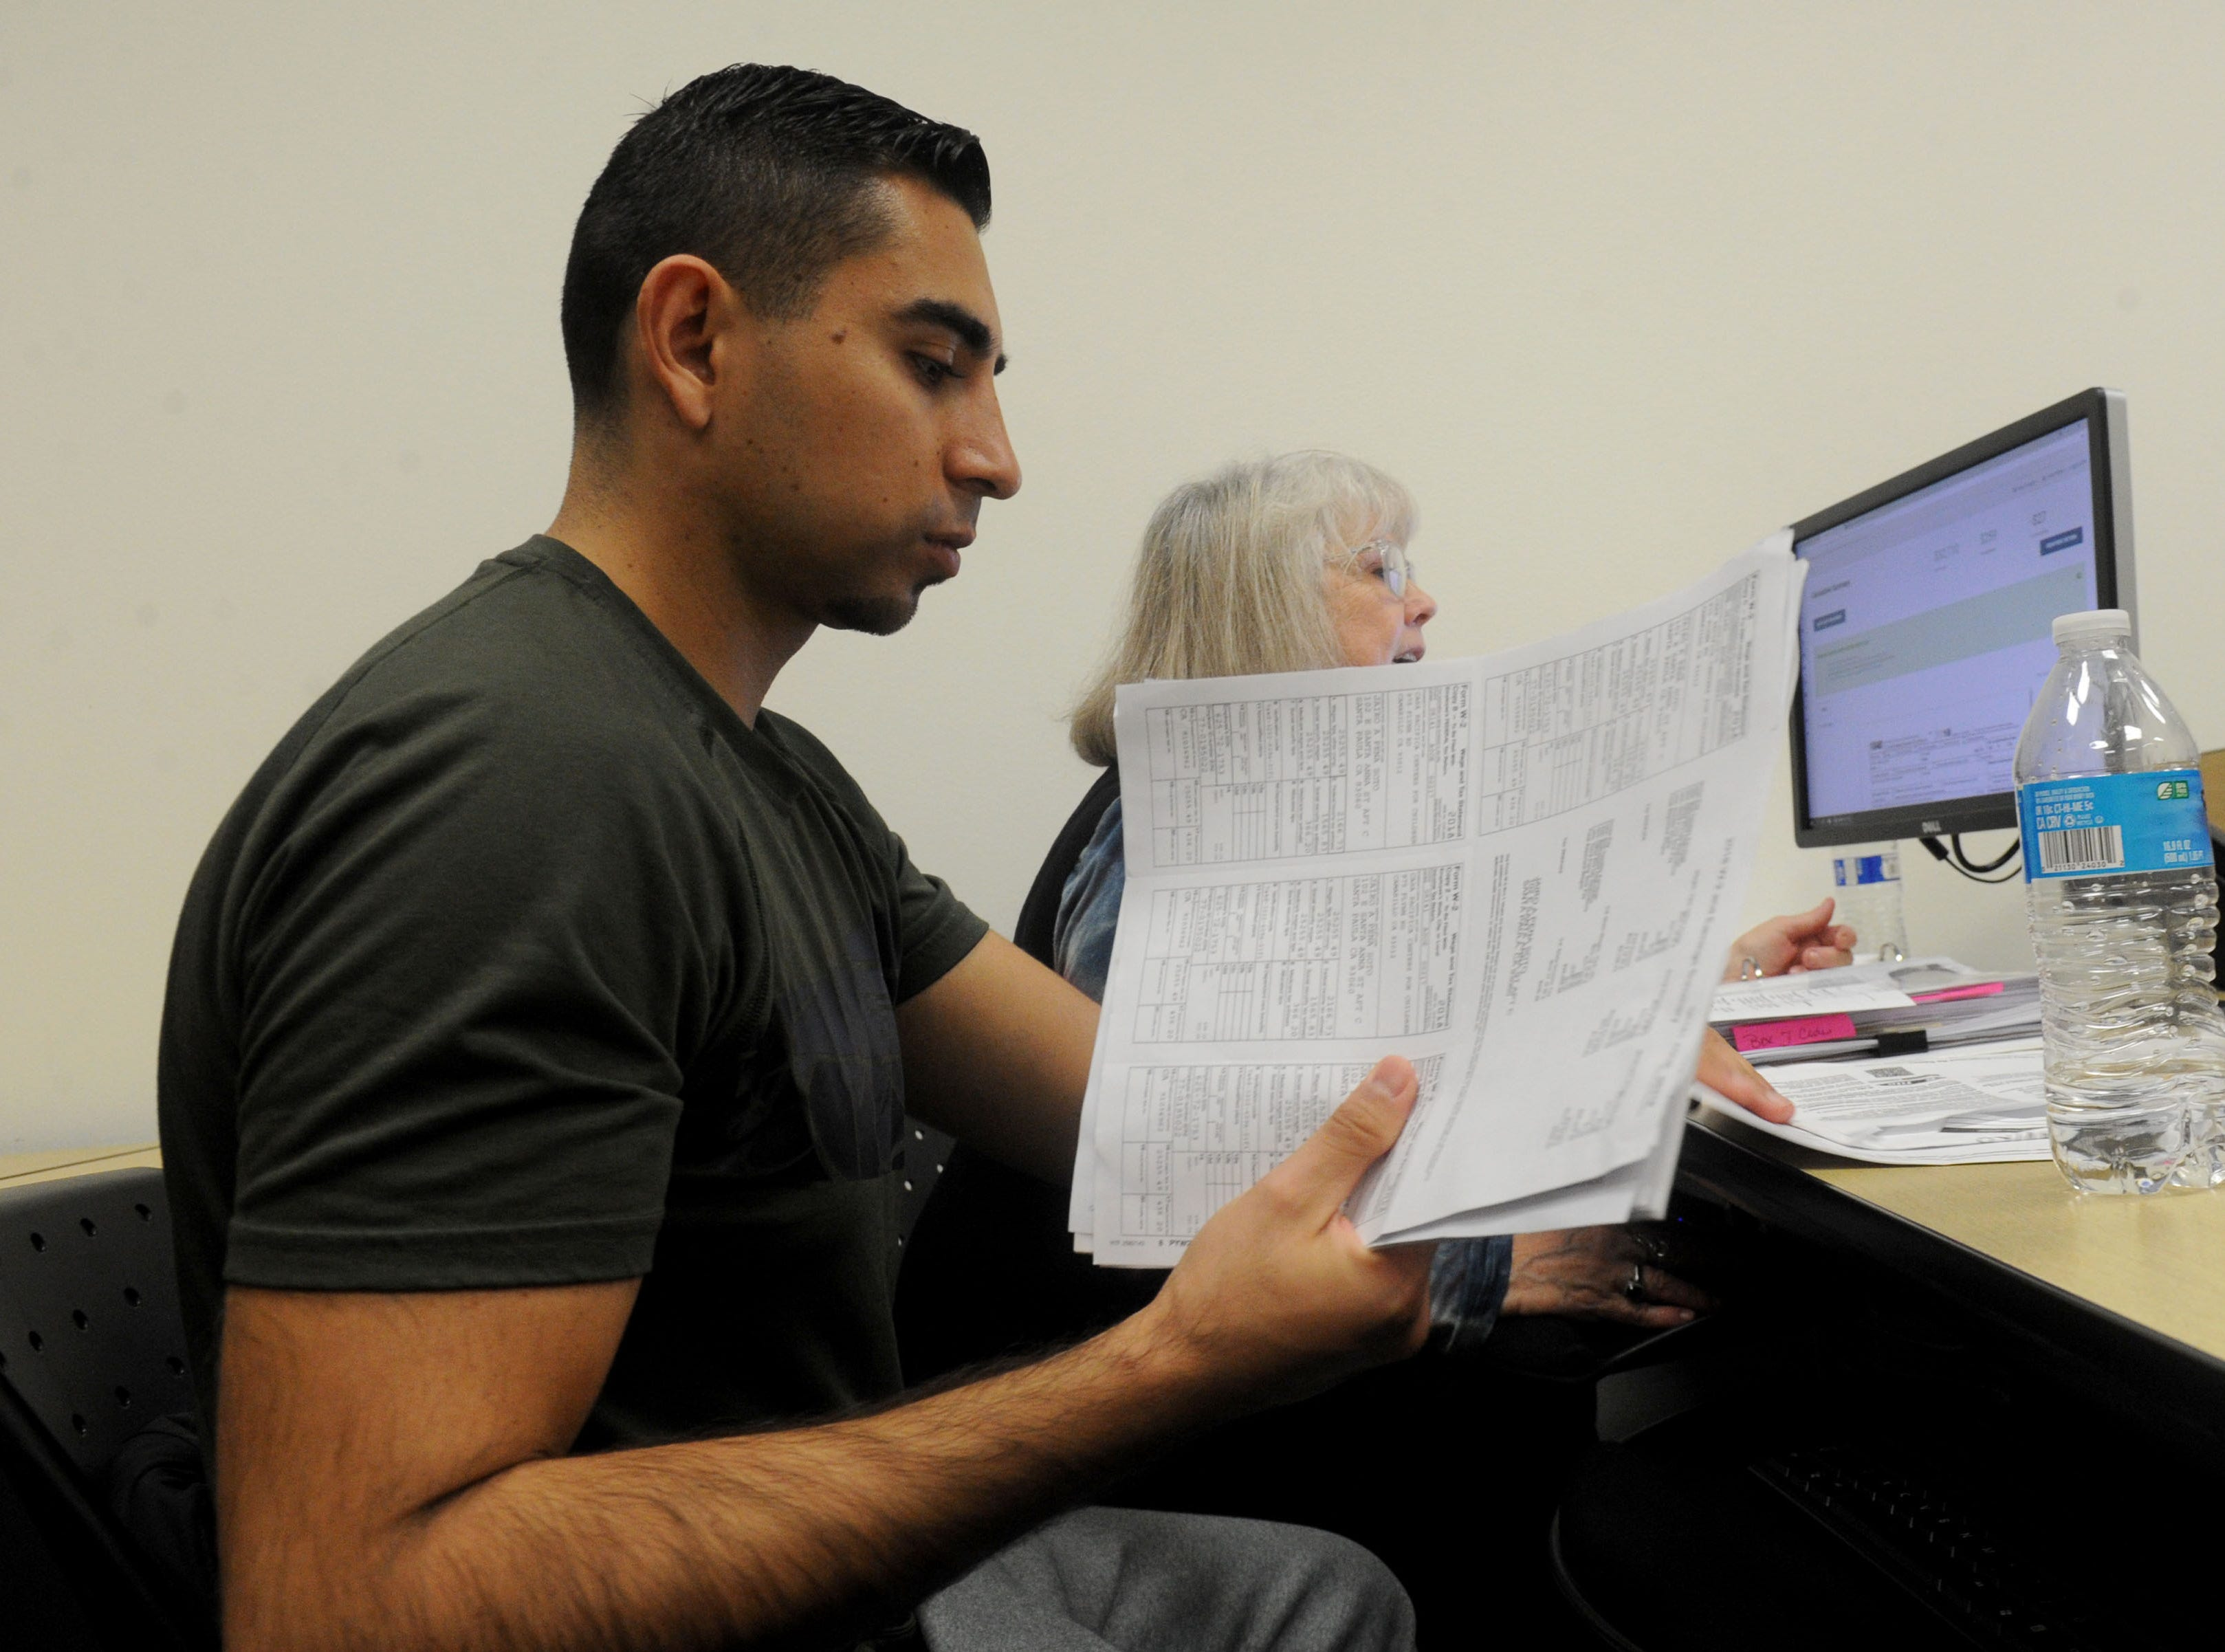 Jairo Pena, left, gets help with his taxes from Pam Grossman as part of the United Way's Volunteer Income Tax Assistance program. The organization's trained volunteers help households that earned less than $55,000